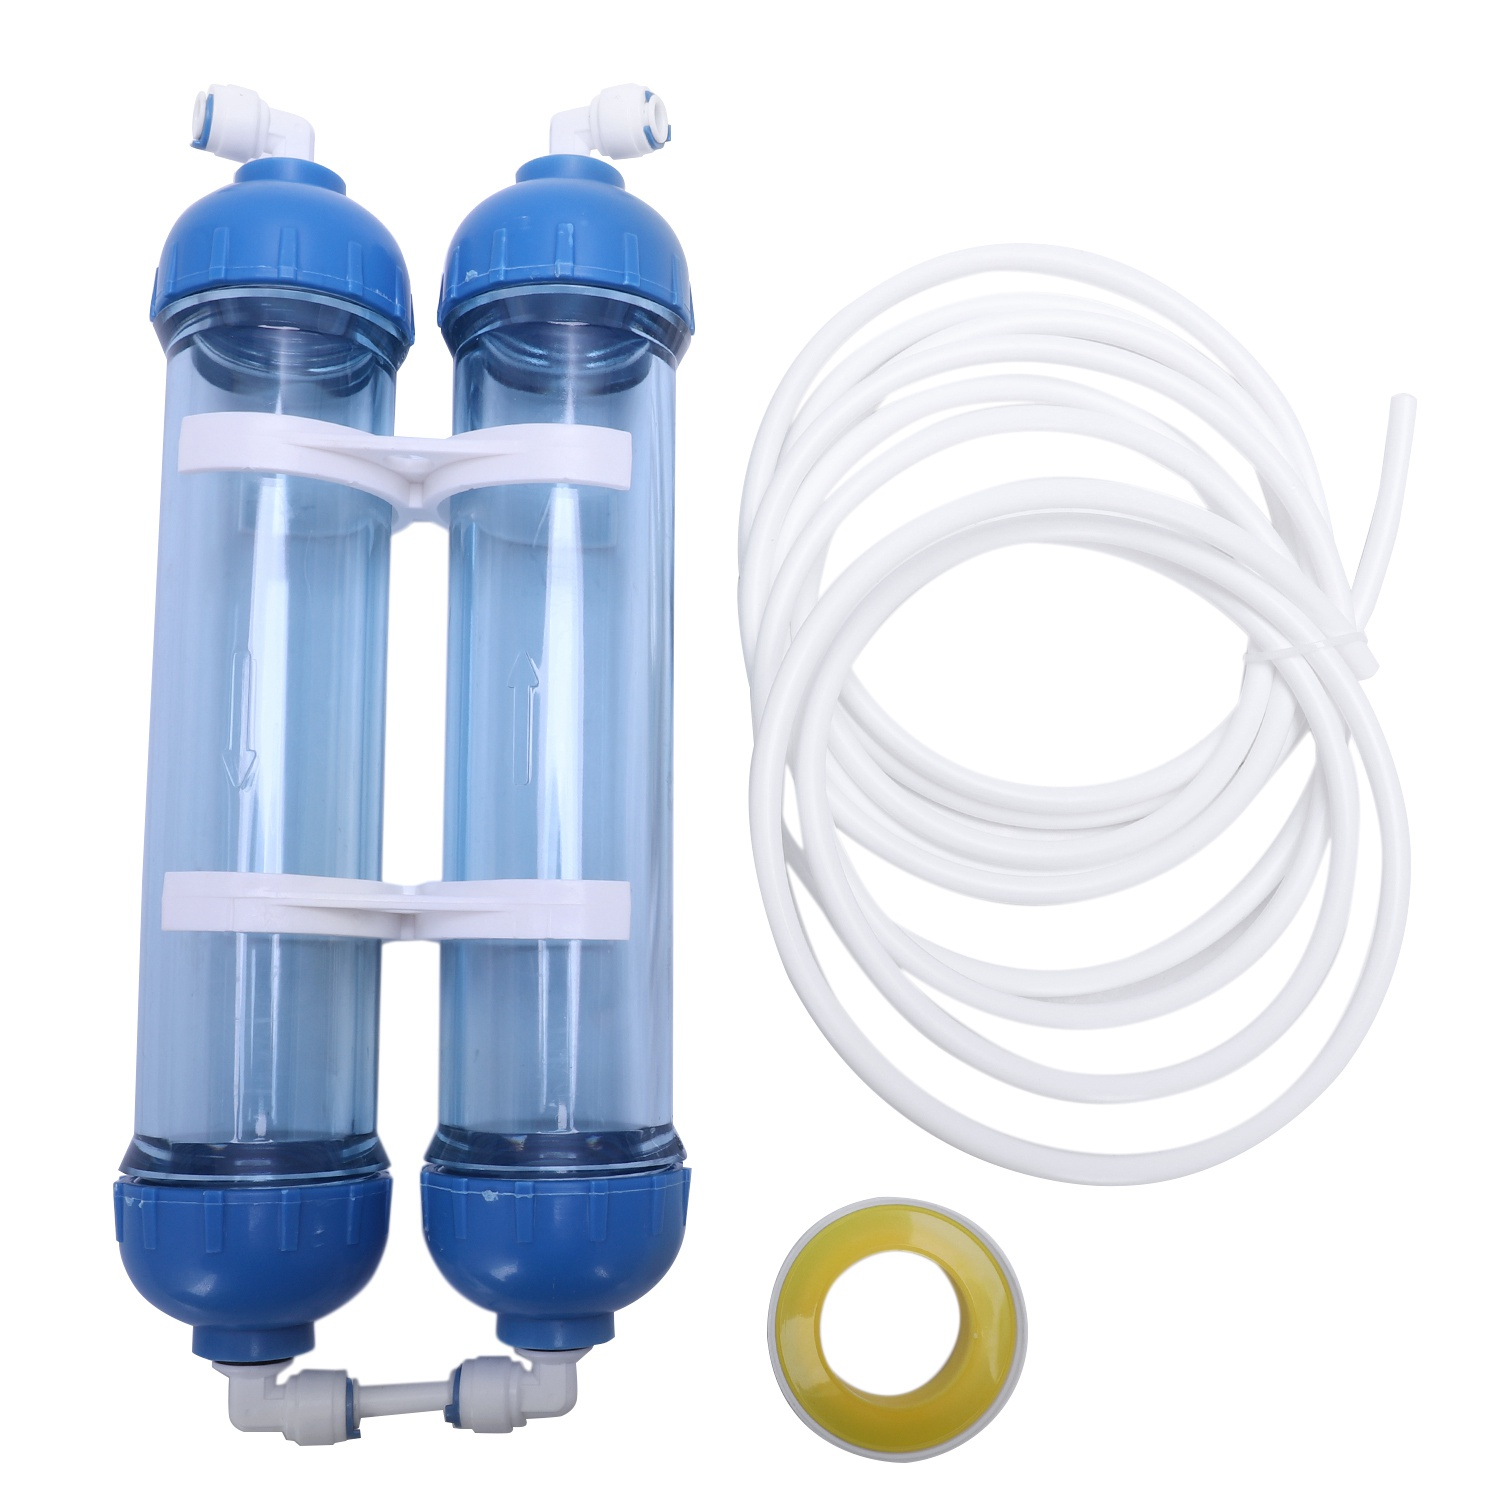 Top Sale Water Filter 2Pcs T33 Cartridge Housing Diy T33 Shell Filter Bottle 4Pcs Fittings Water Purifier For Reverse Osmosis